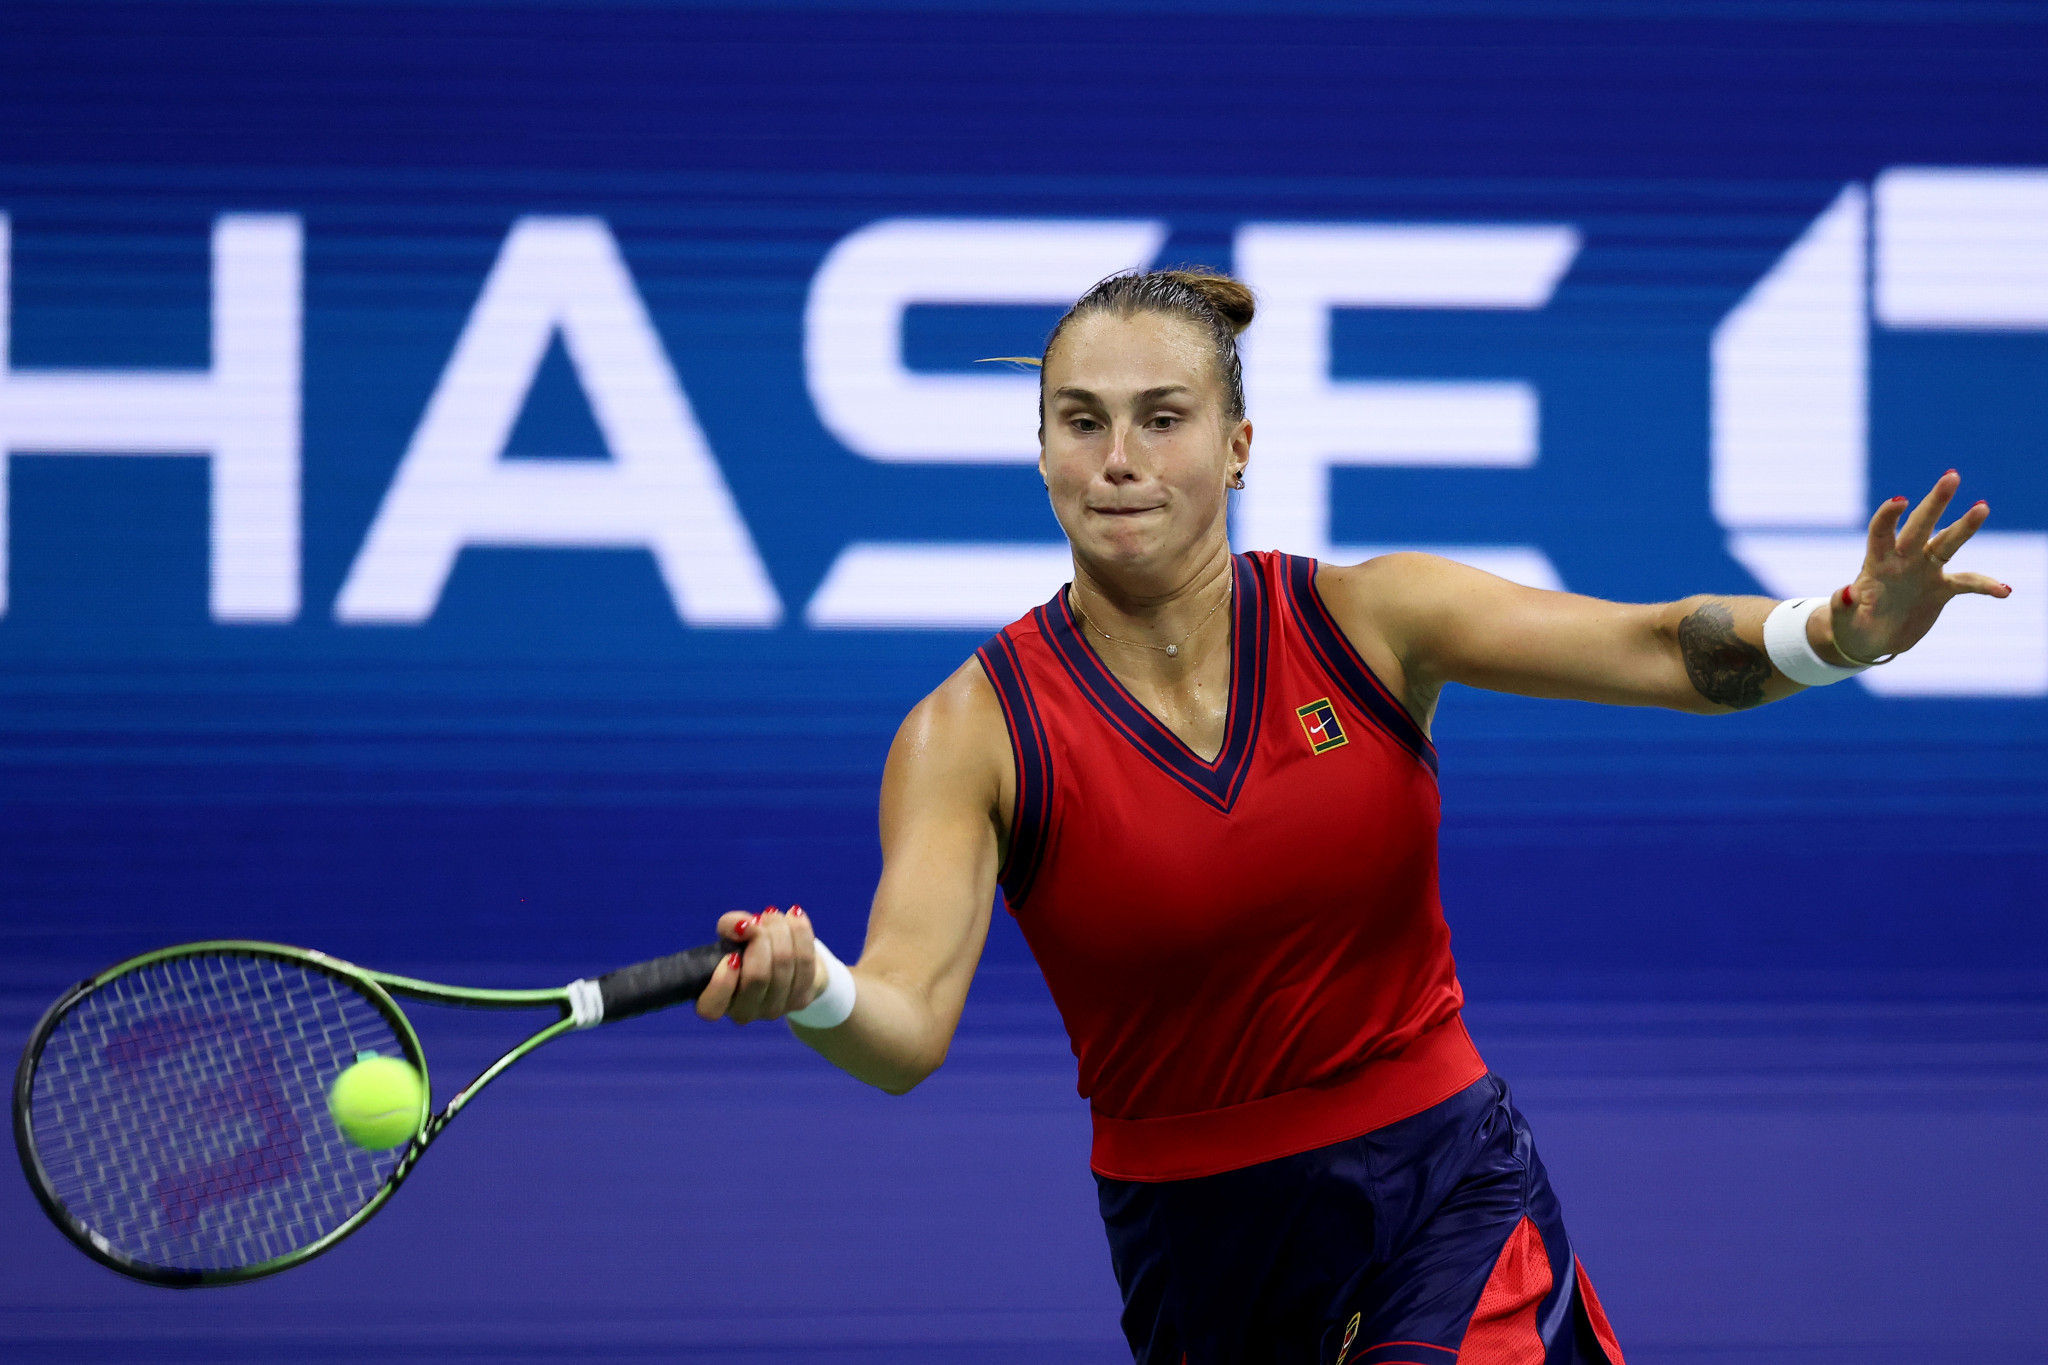 World number two Aryna Sabalenka from Belarus reached the last four courtesy of a straight sets win against the Czech Republic's Barbora Krejčíková ©Getty Images